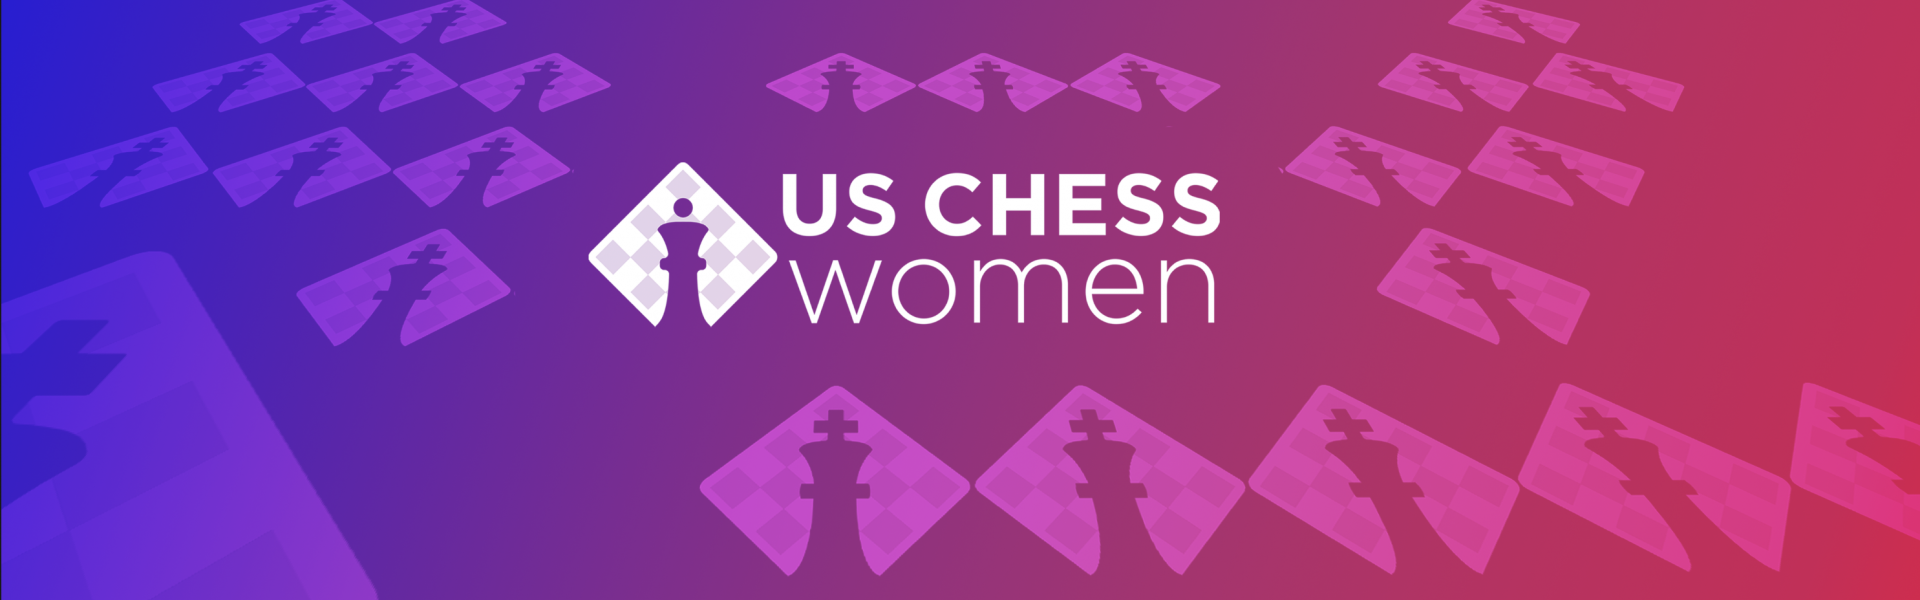 us chess women banner